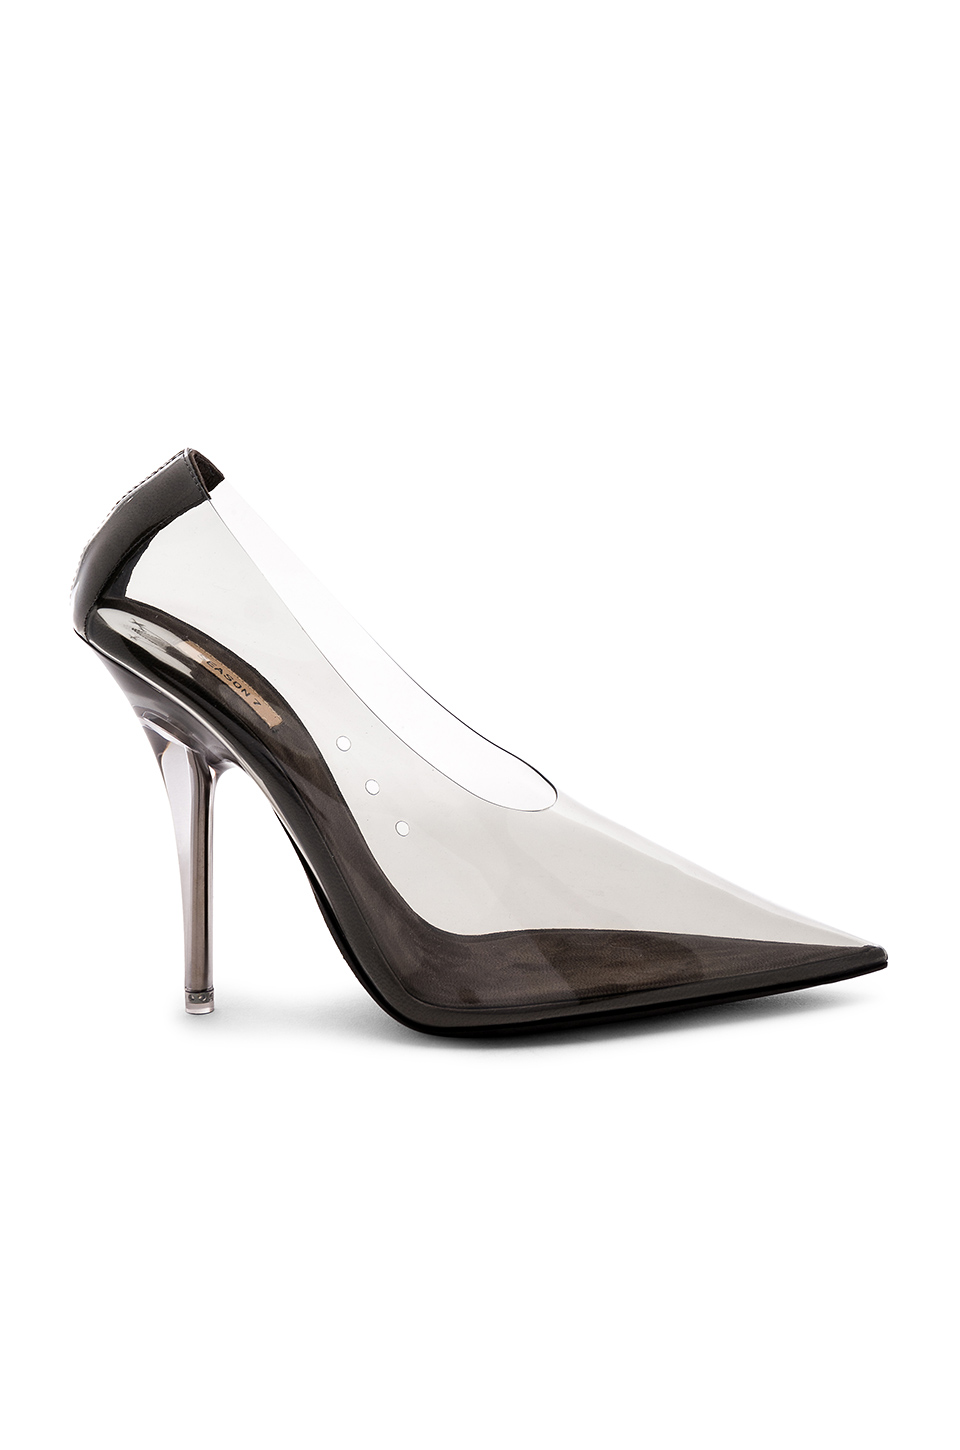 SEASON 7 Pump 110MM by Yeezy, available on revolve.com for $650 Kendall Jenner Shoes Exact Product